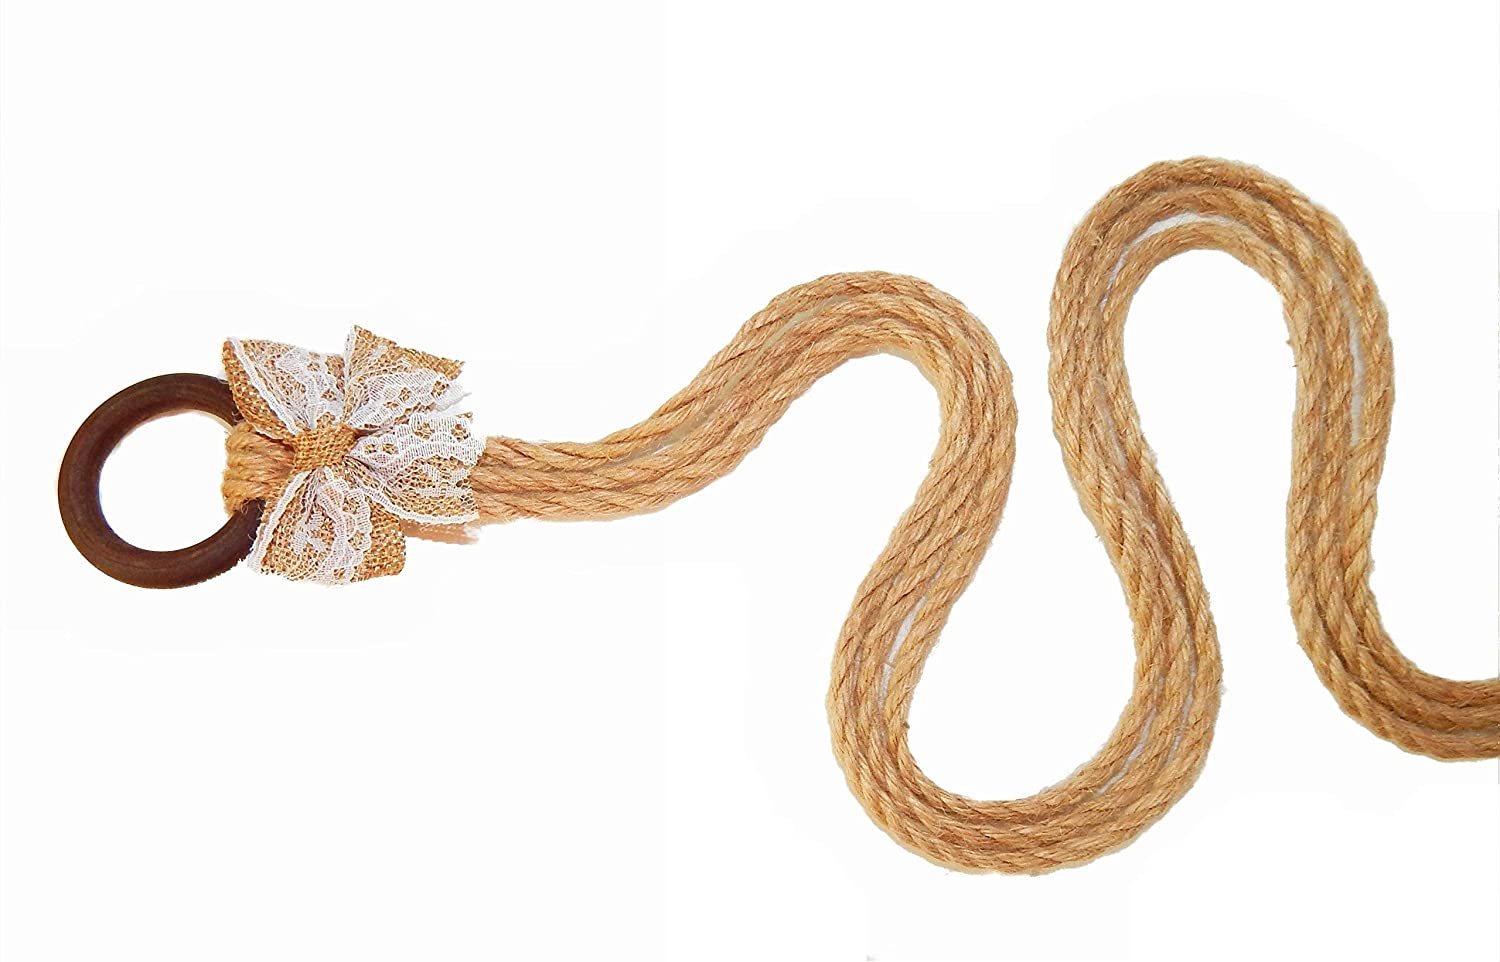 A Cord of Three Strands Gods Wedding Knots 5 mm thick Jute Rope